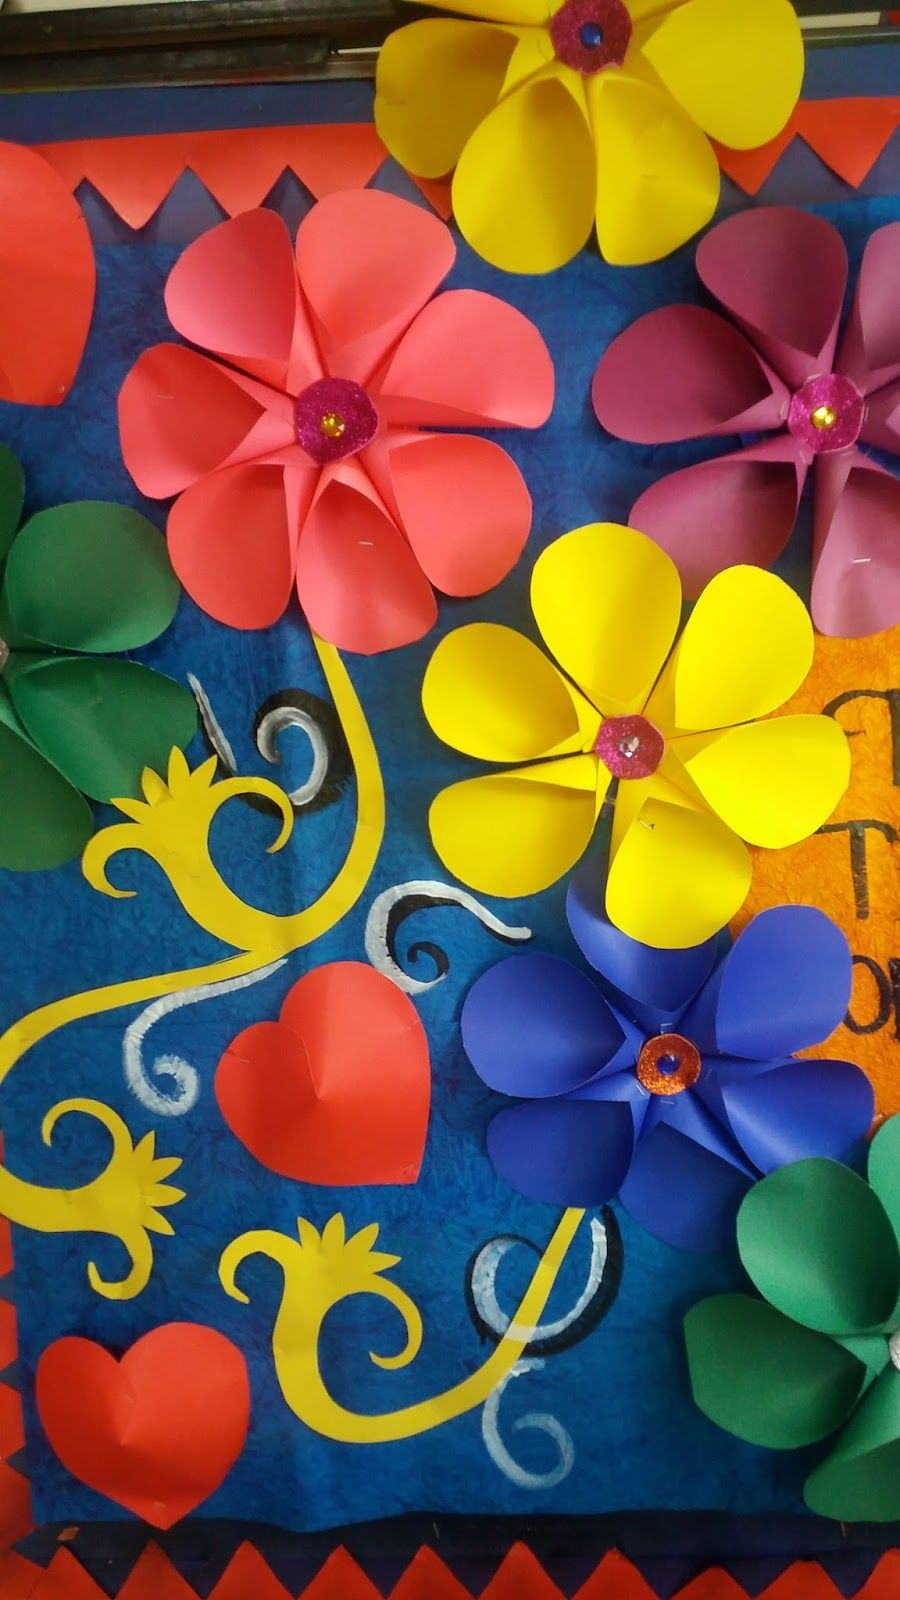 A Blog About Art Craft Ideas For Kids And School Projects